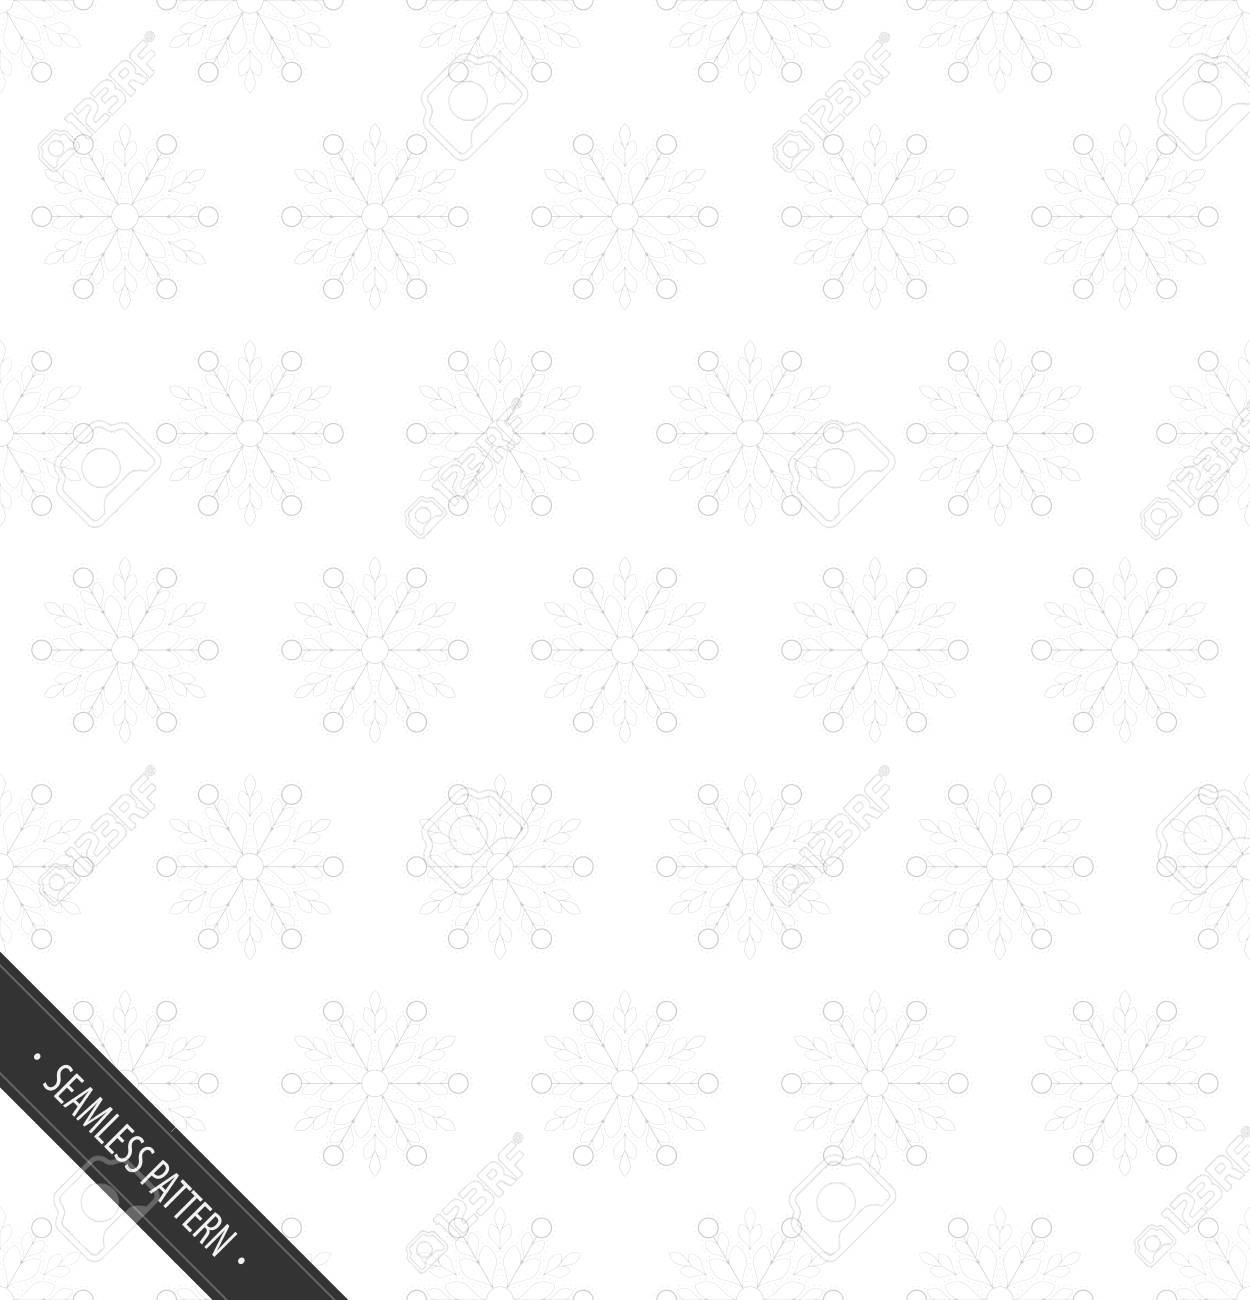 Seamless White Pattern with Snowflakes EPS10 Vector - 51755970